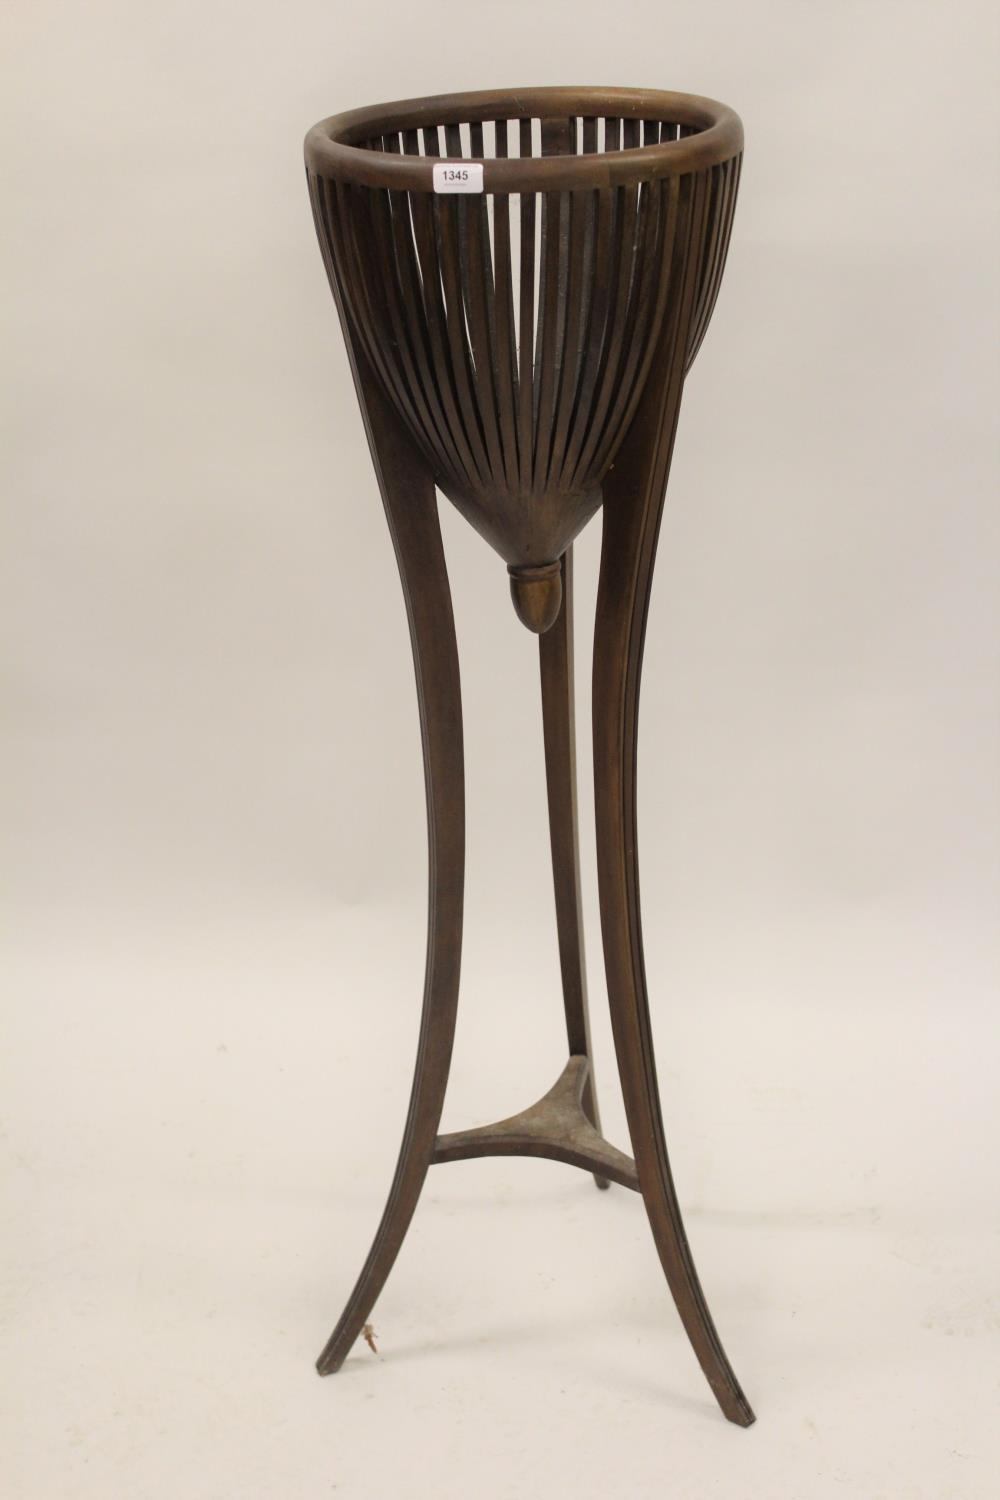 Edwardian mahogany jardiniere stand with basket top